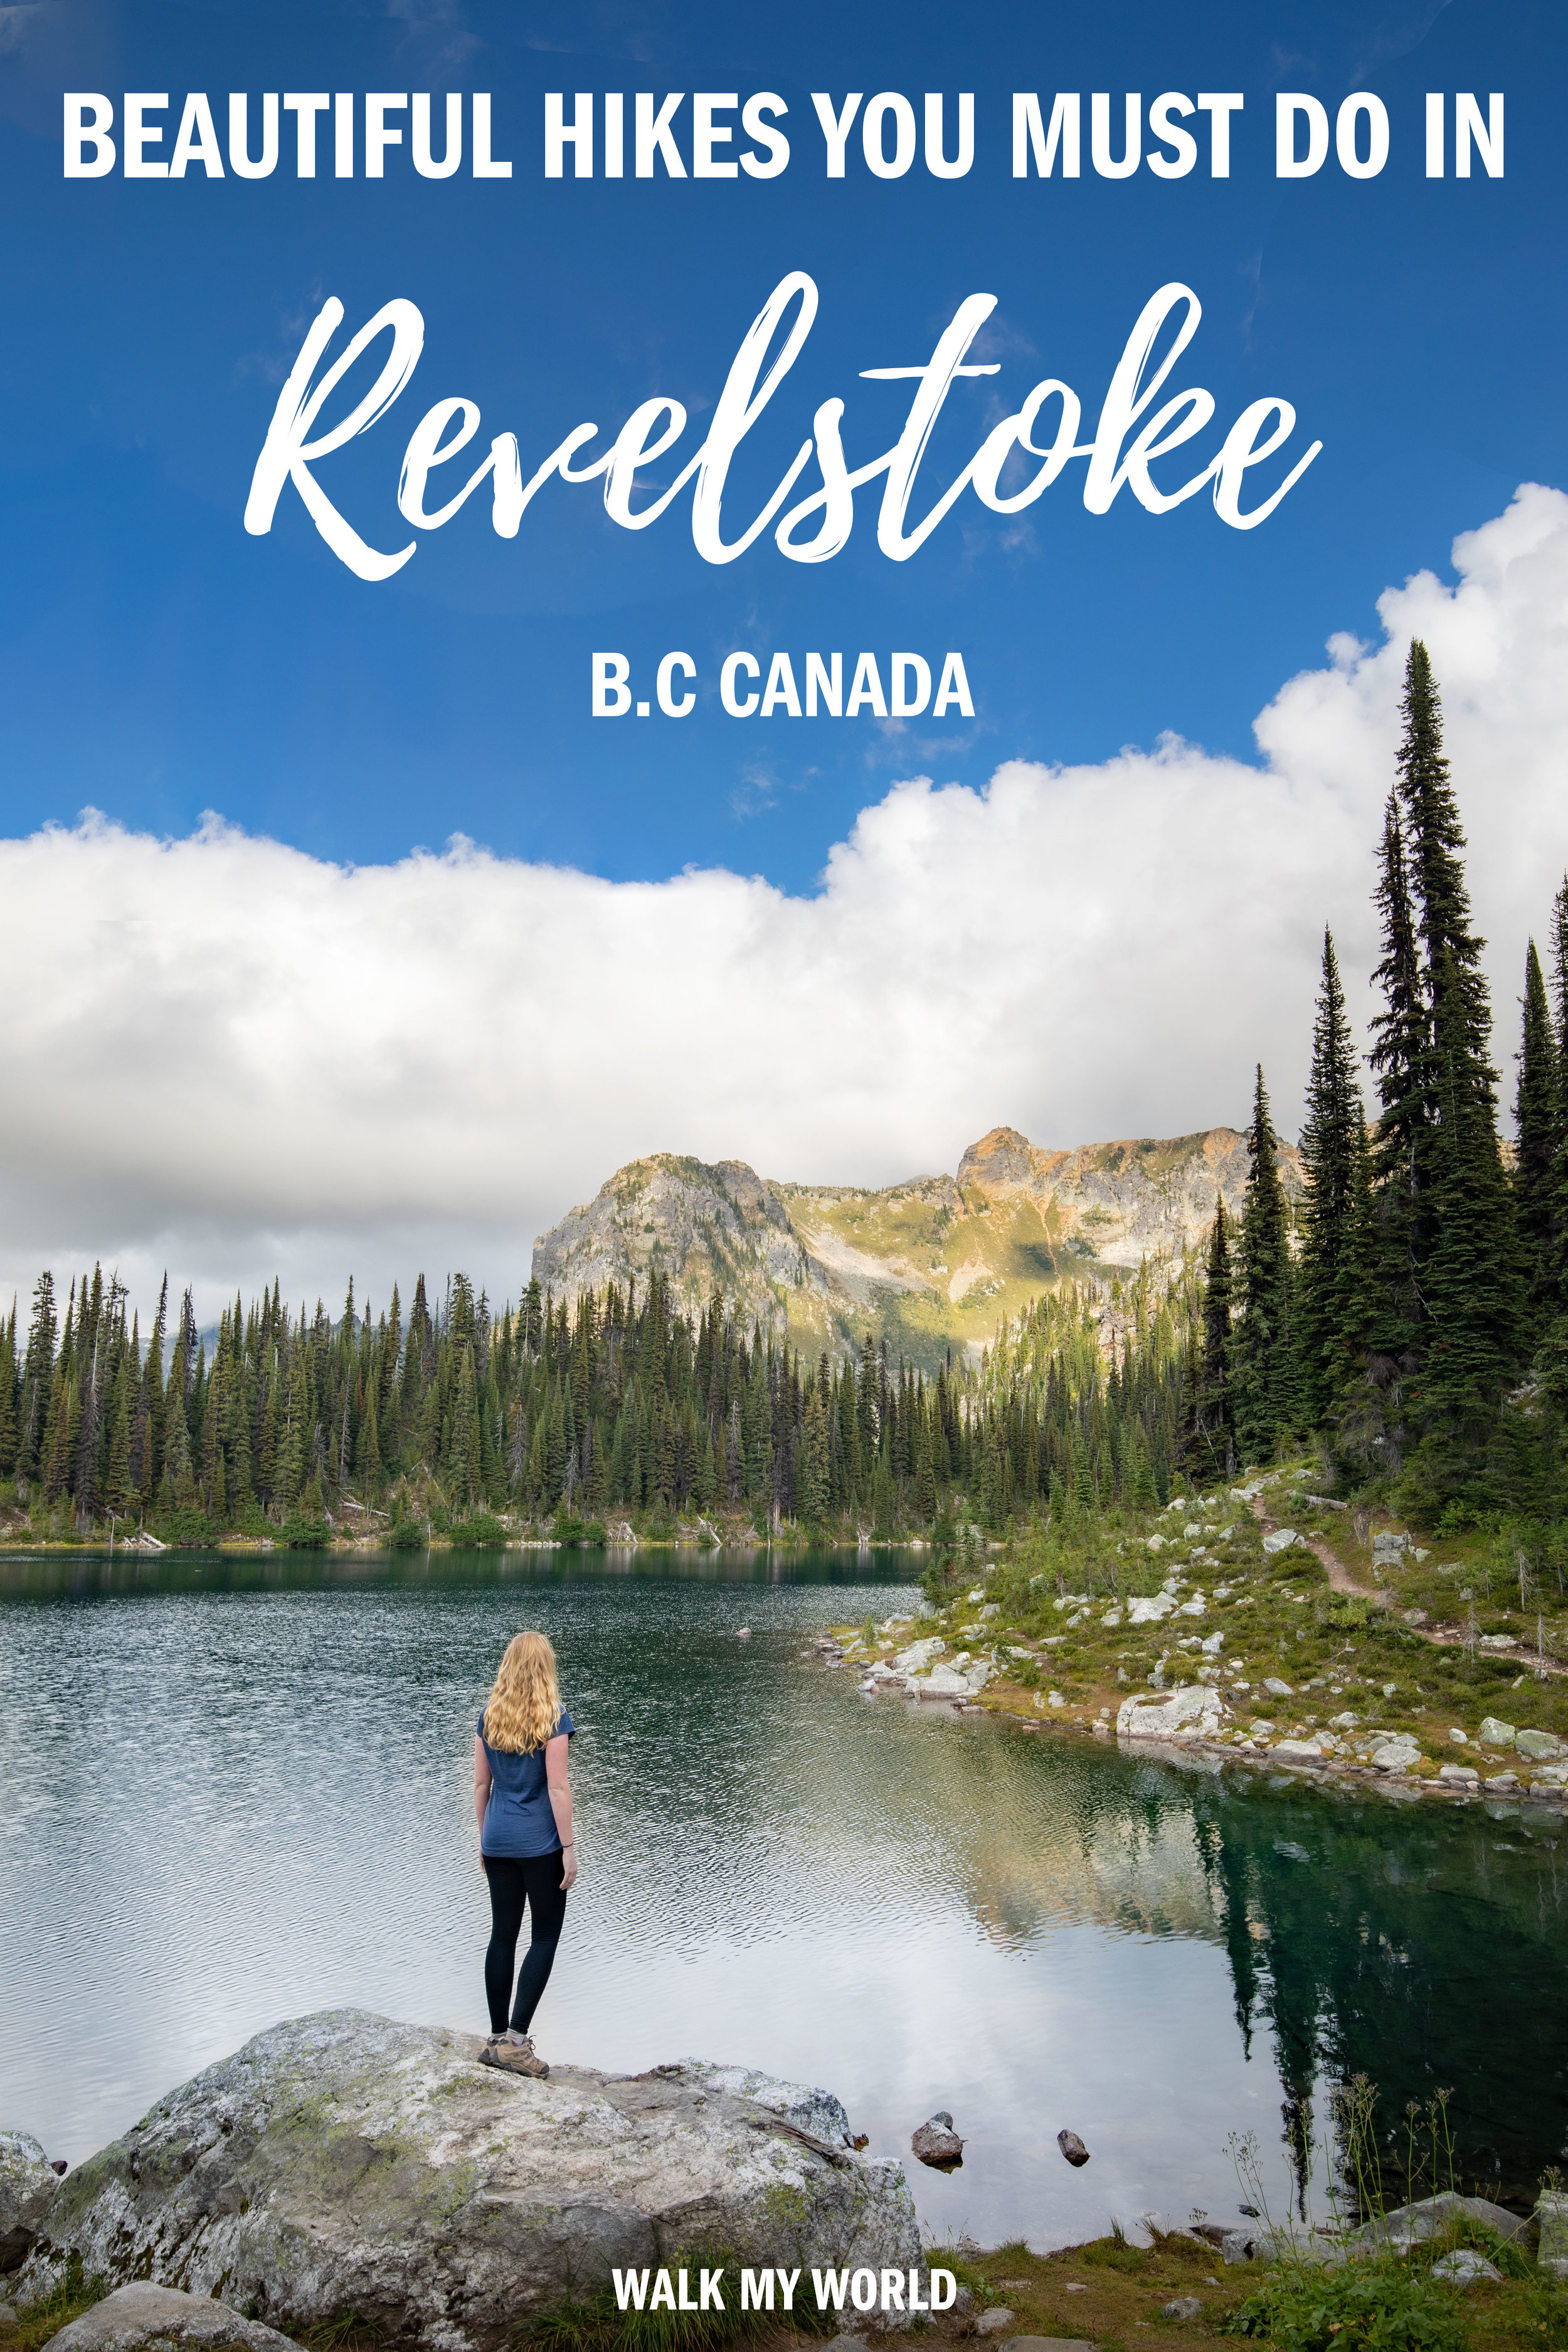 10 Revelstoke hikes for all levels! We'll take you through the best hikes to do around the whole area, what to expect and how to plan your trip to Revelstoke. #Canada #Revelstoke #RevelstokeHikes #BritishColumbia